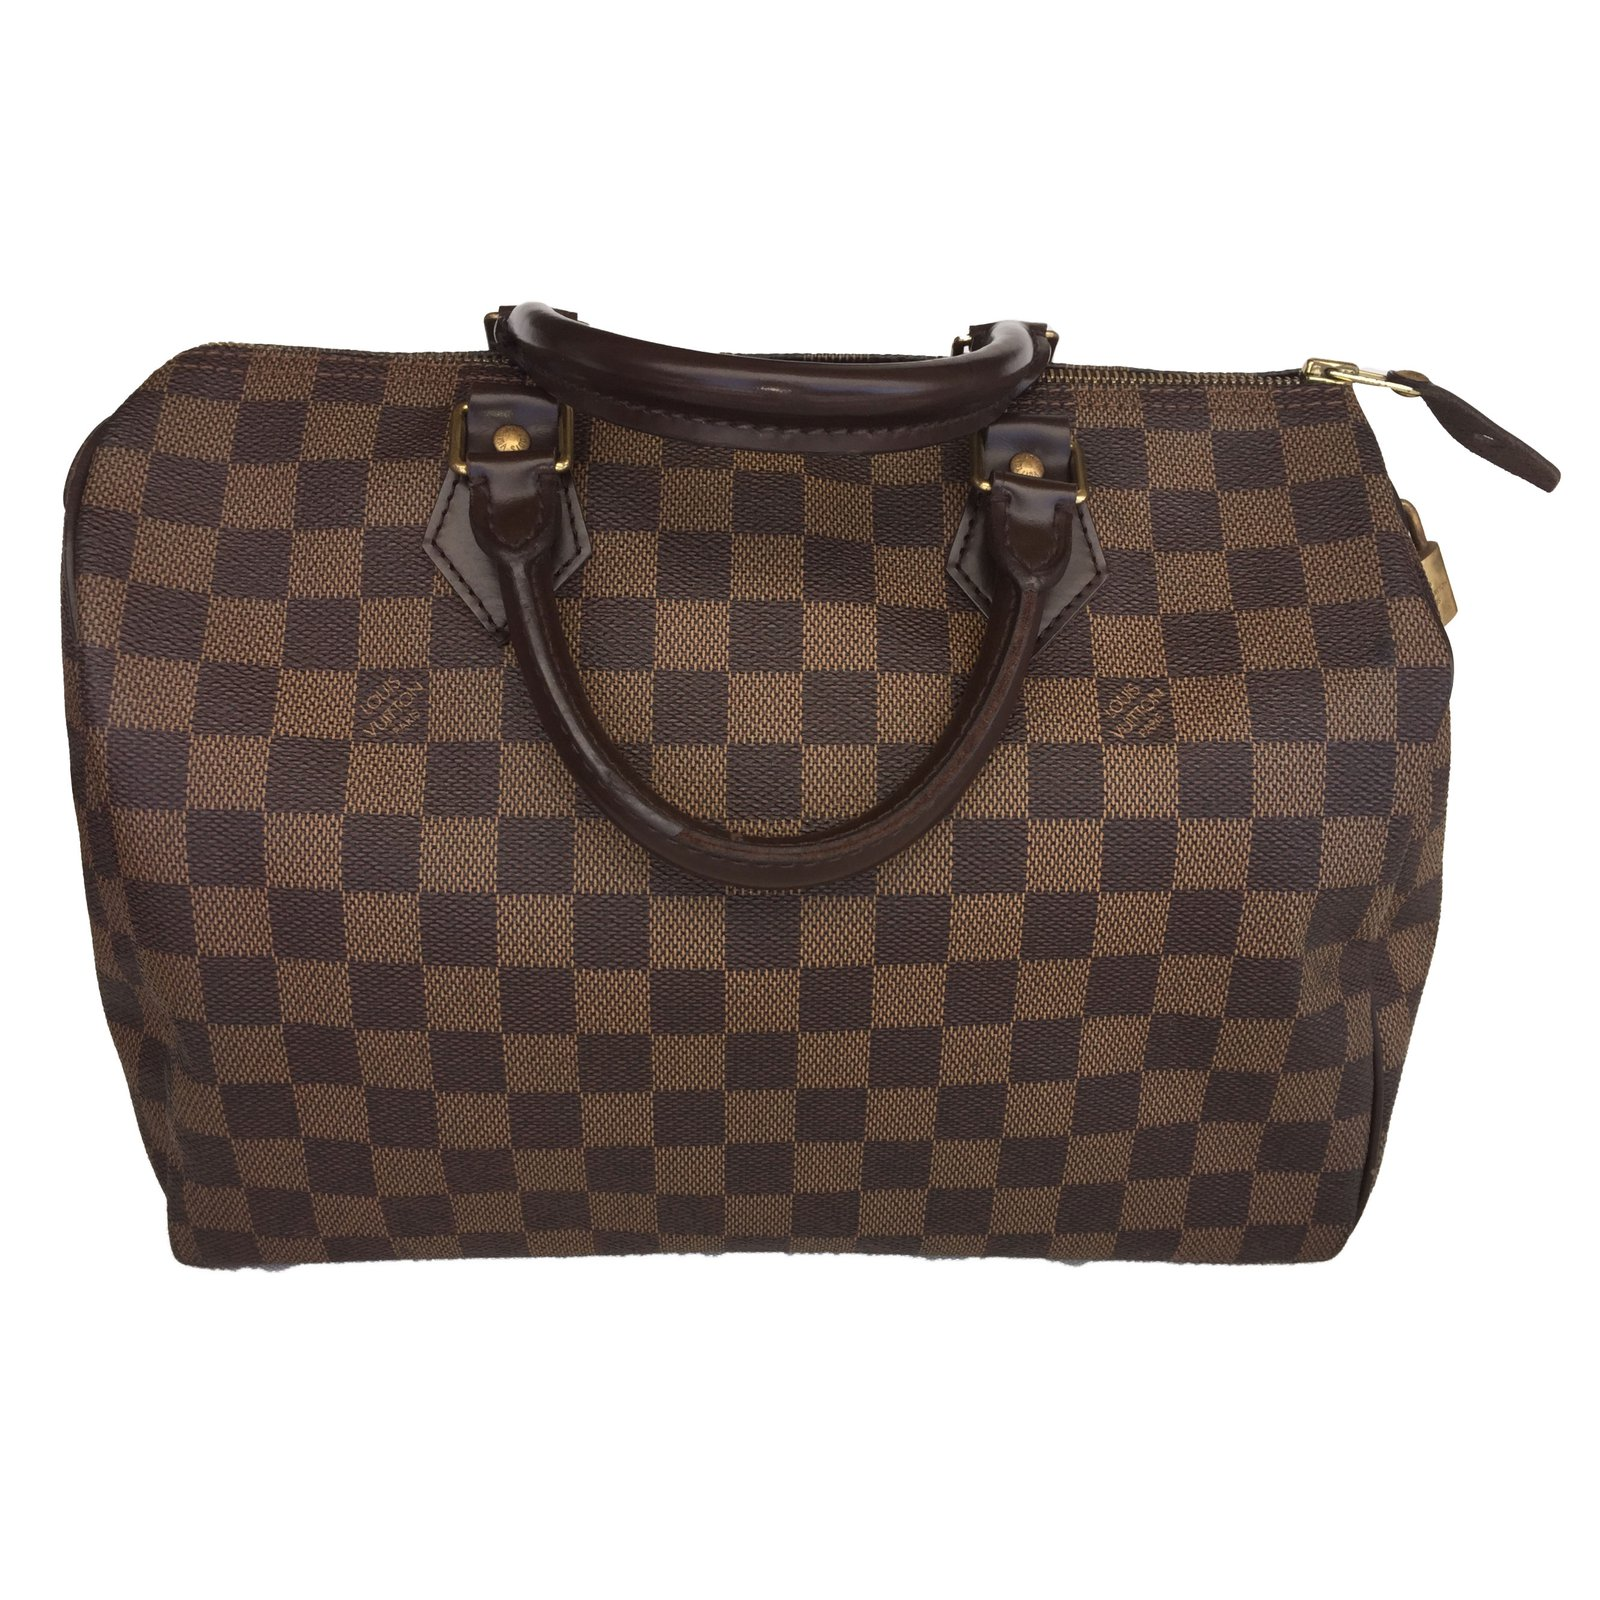 louis vuitton speedy 30 damier eb232ne handbags leather